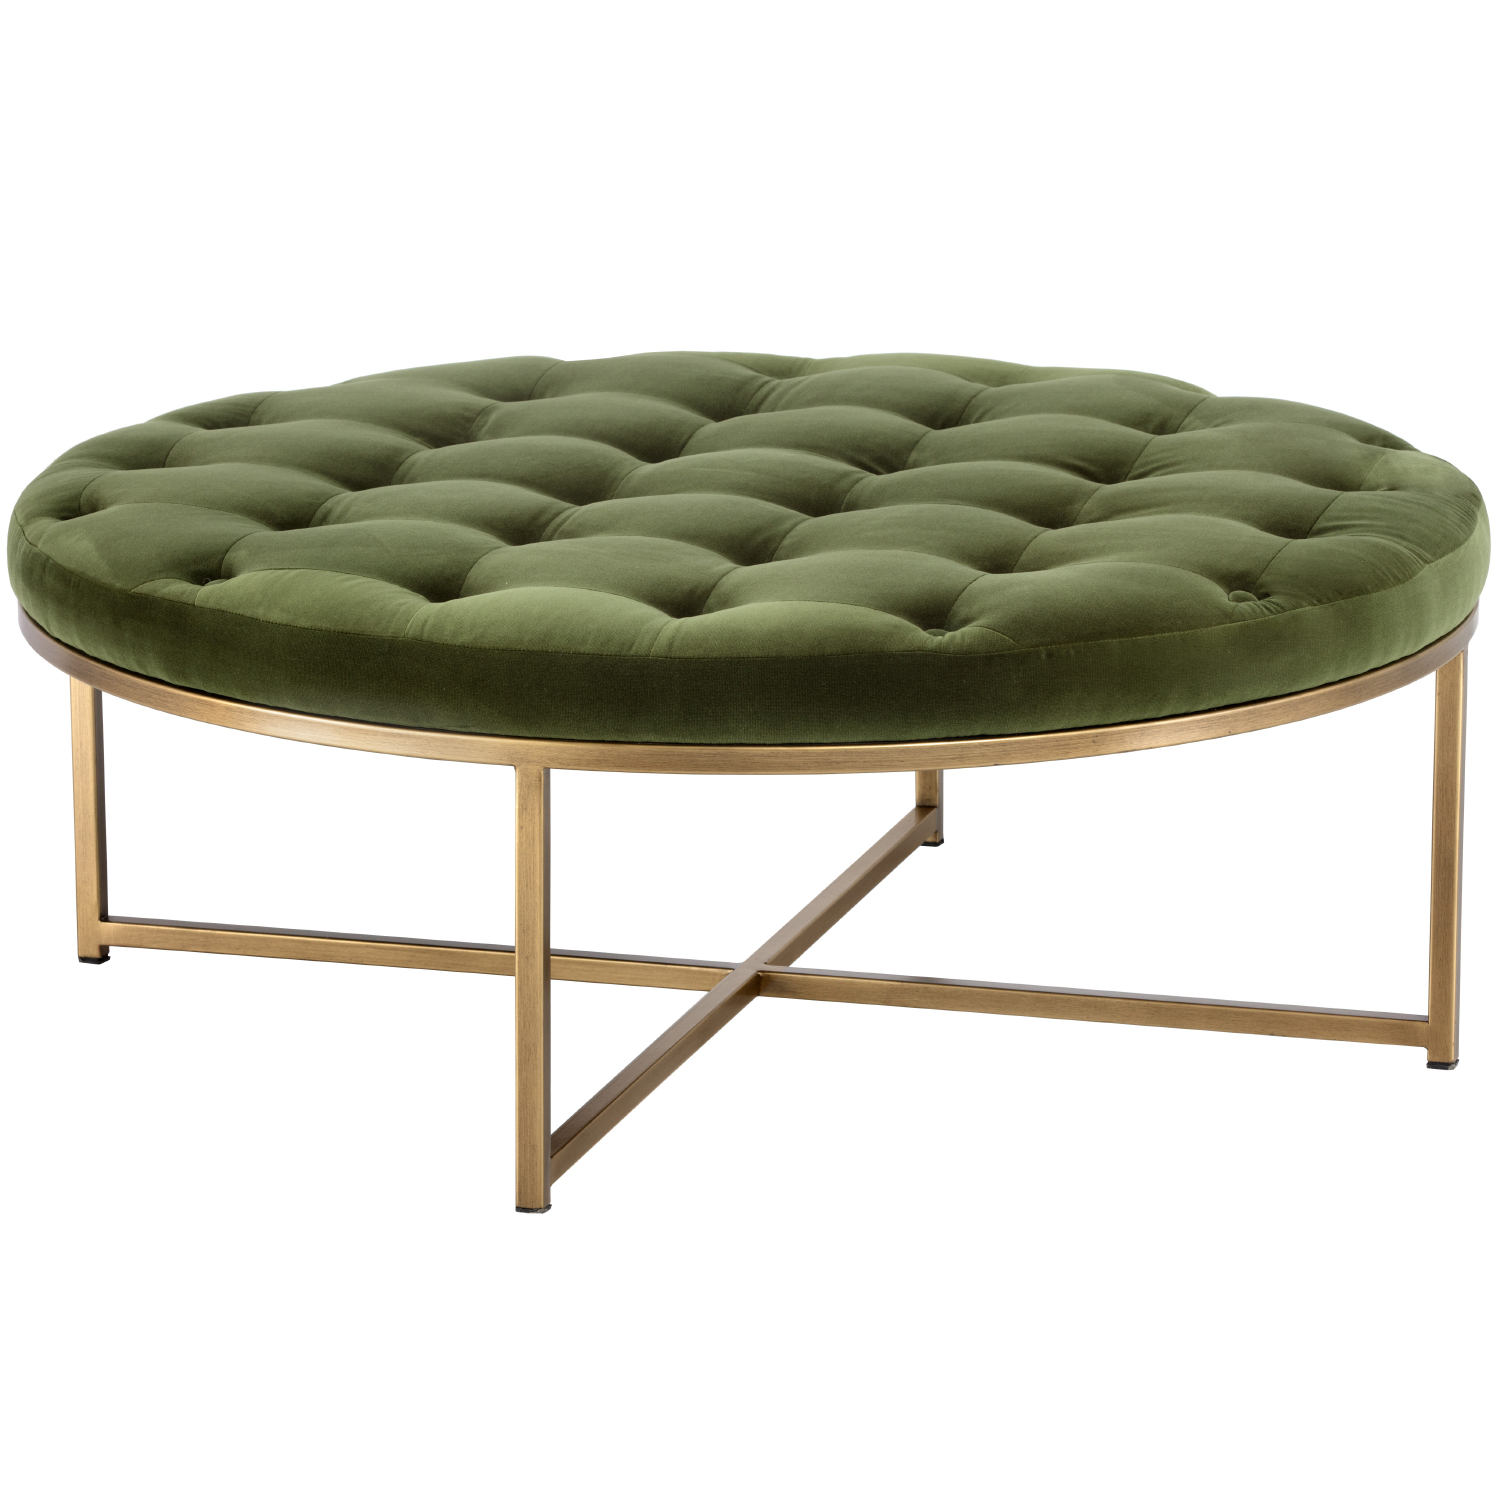 endall square coffee table ottoman in vintage camel leather antique brass by sunpan